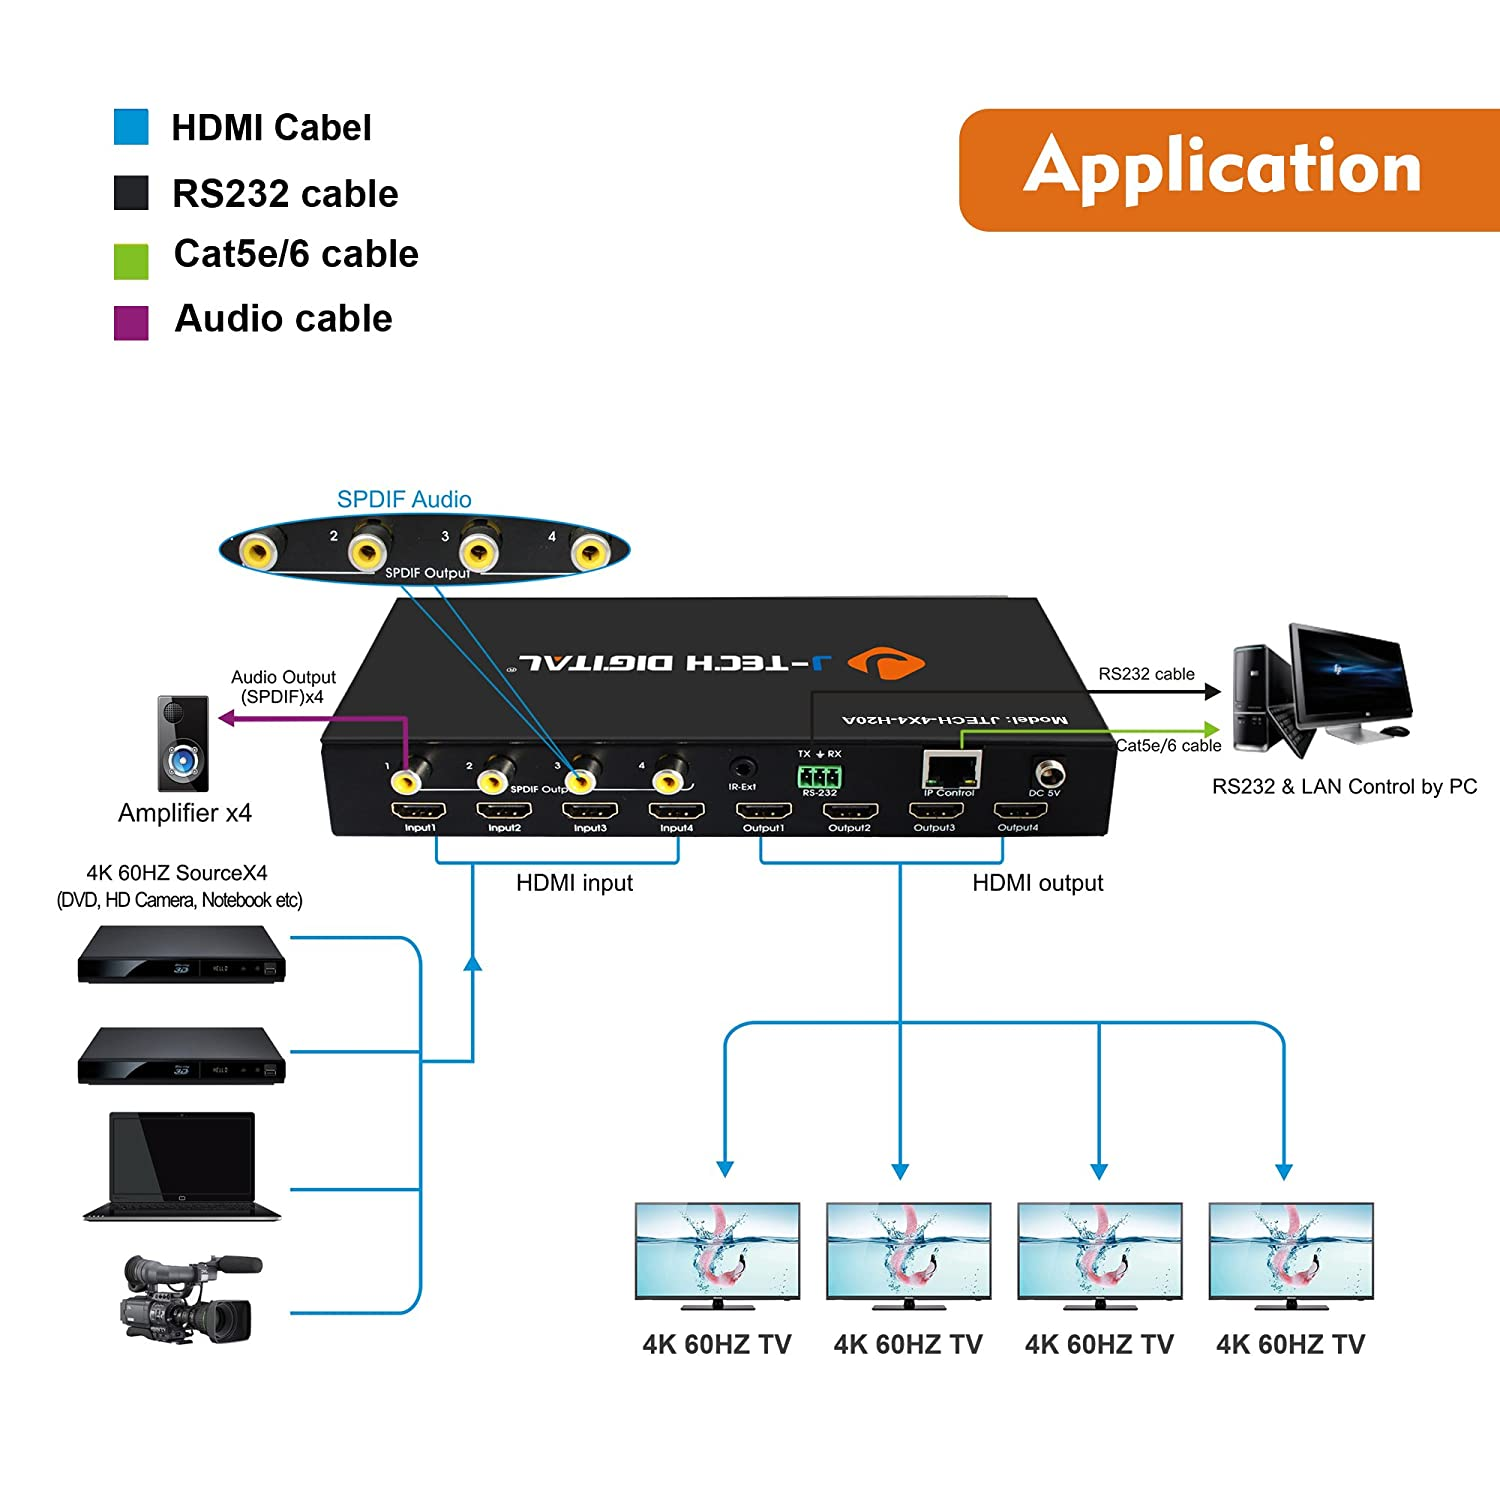 J Tech Digital 4k 60hz 4x4 Hdmi Matrix Yuv444 Details About Cat5e Cat6 Auto Switch Splitter Extender 18gbps Supports 20 Hdcp 22 14hdr Edid Ir Remote Control Rs232